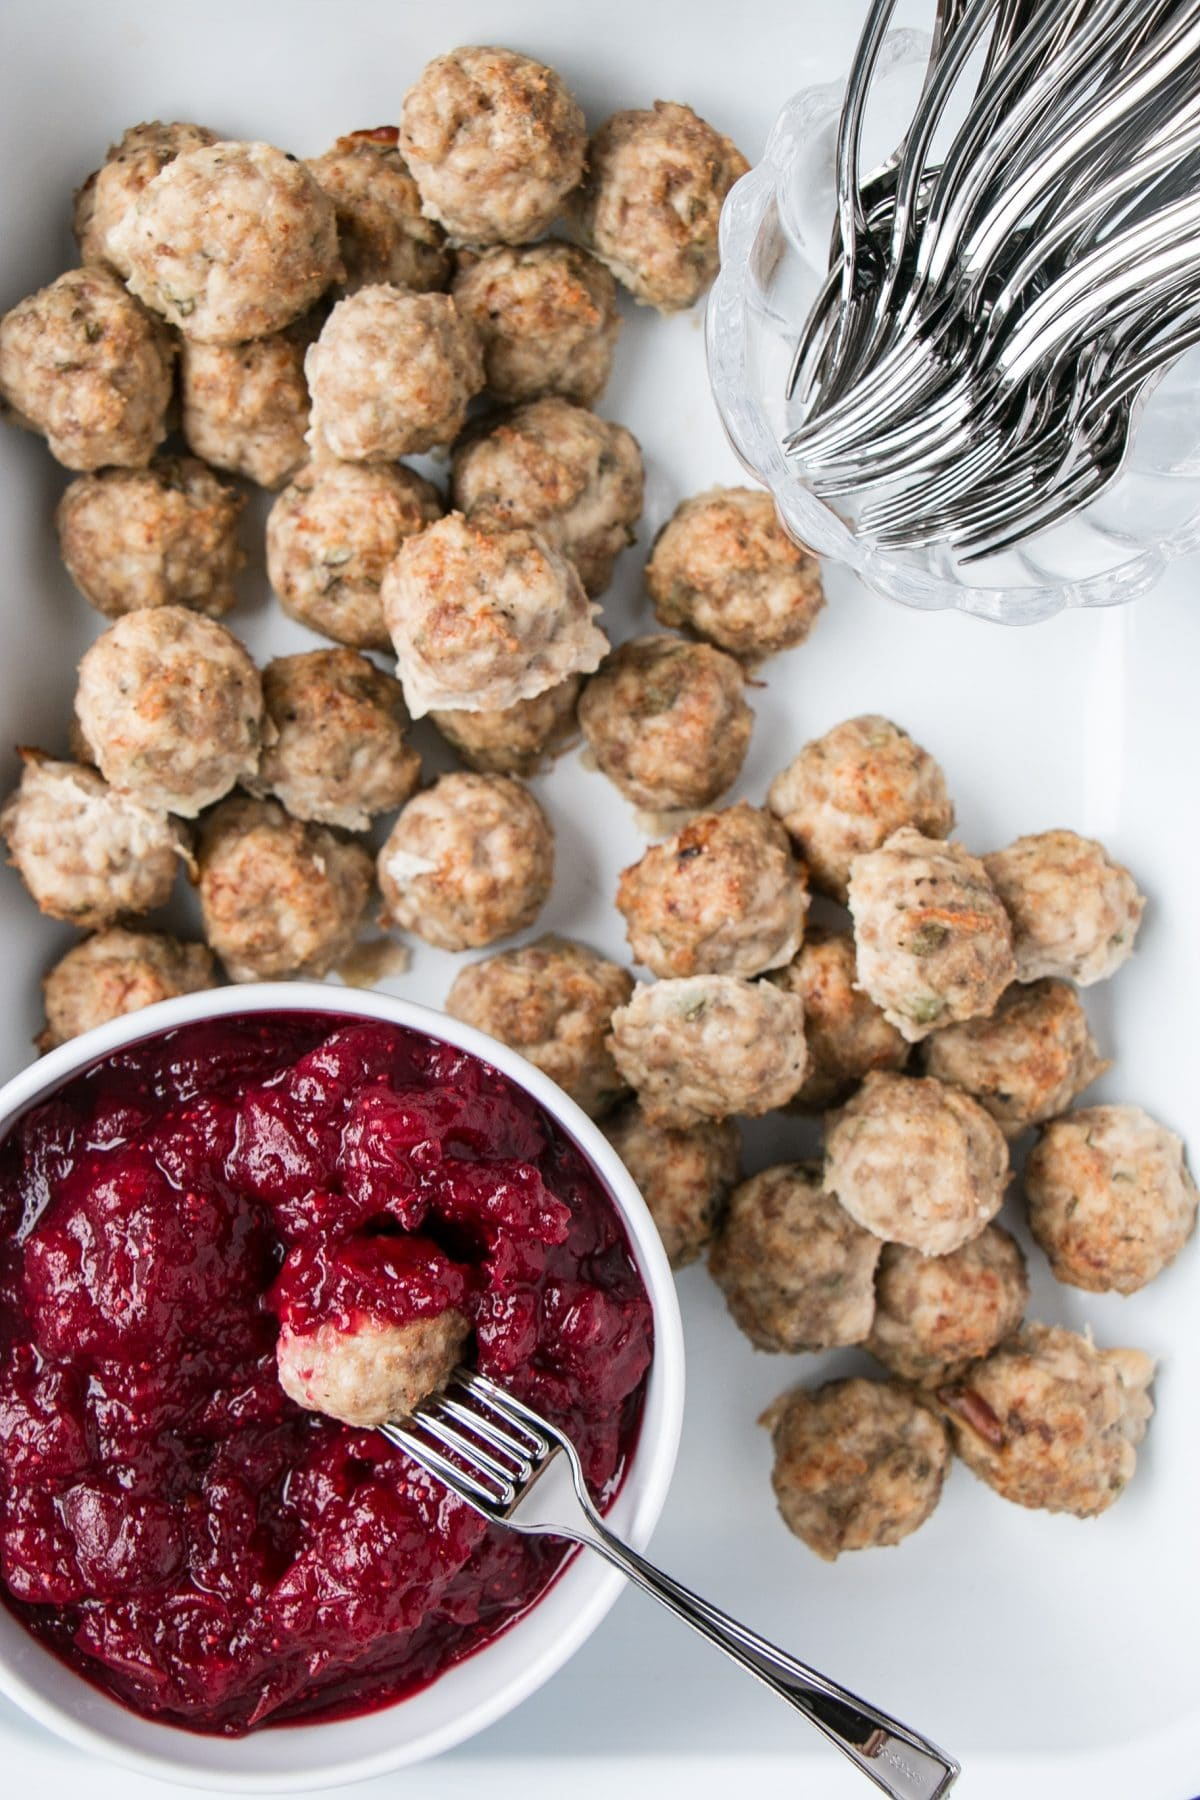 Mini Turkey Meatballs with Cranberry Dip for one of the 10 Best Make Ahead Holiday Appetizers